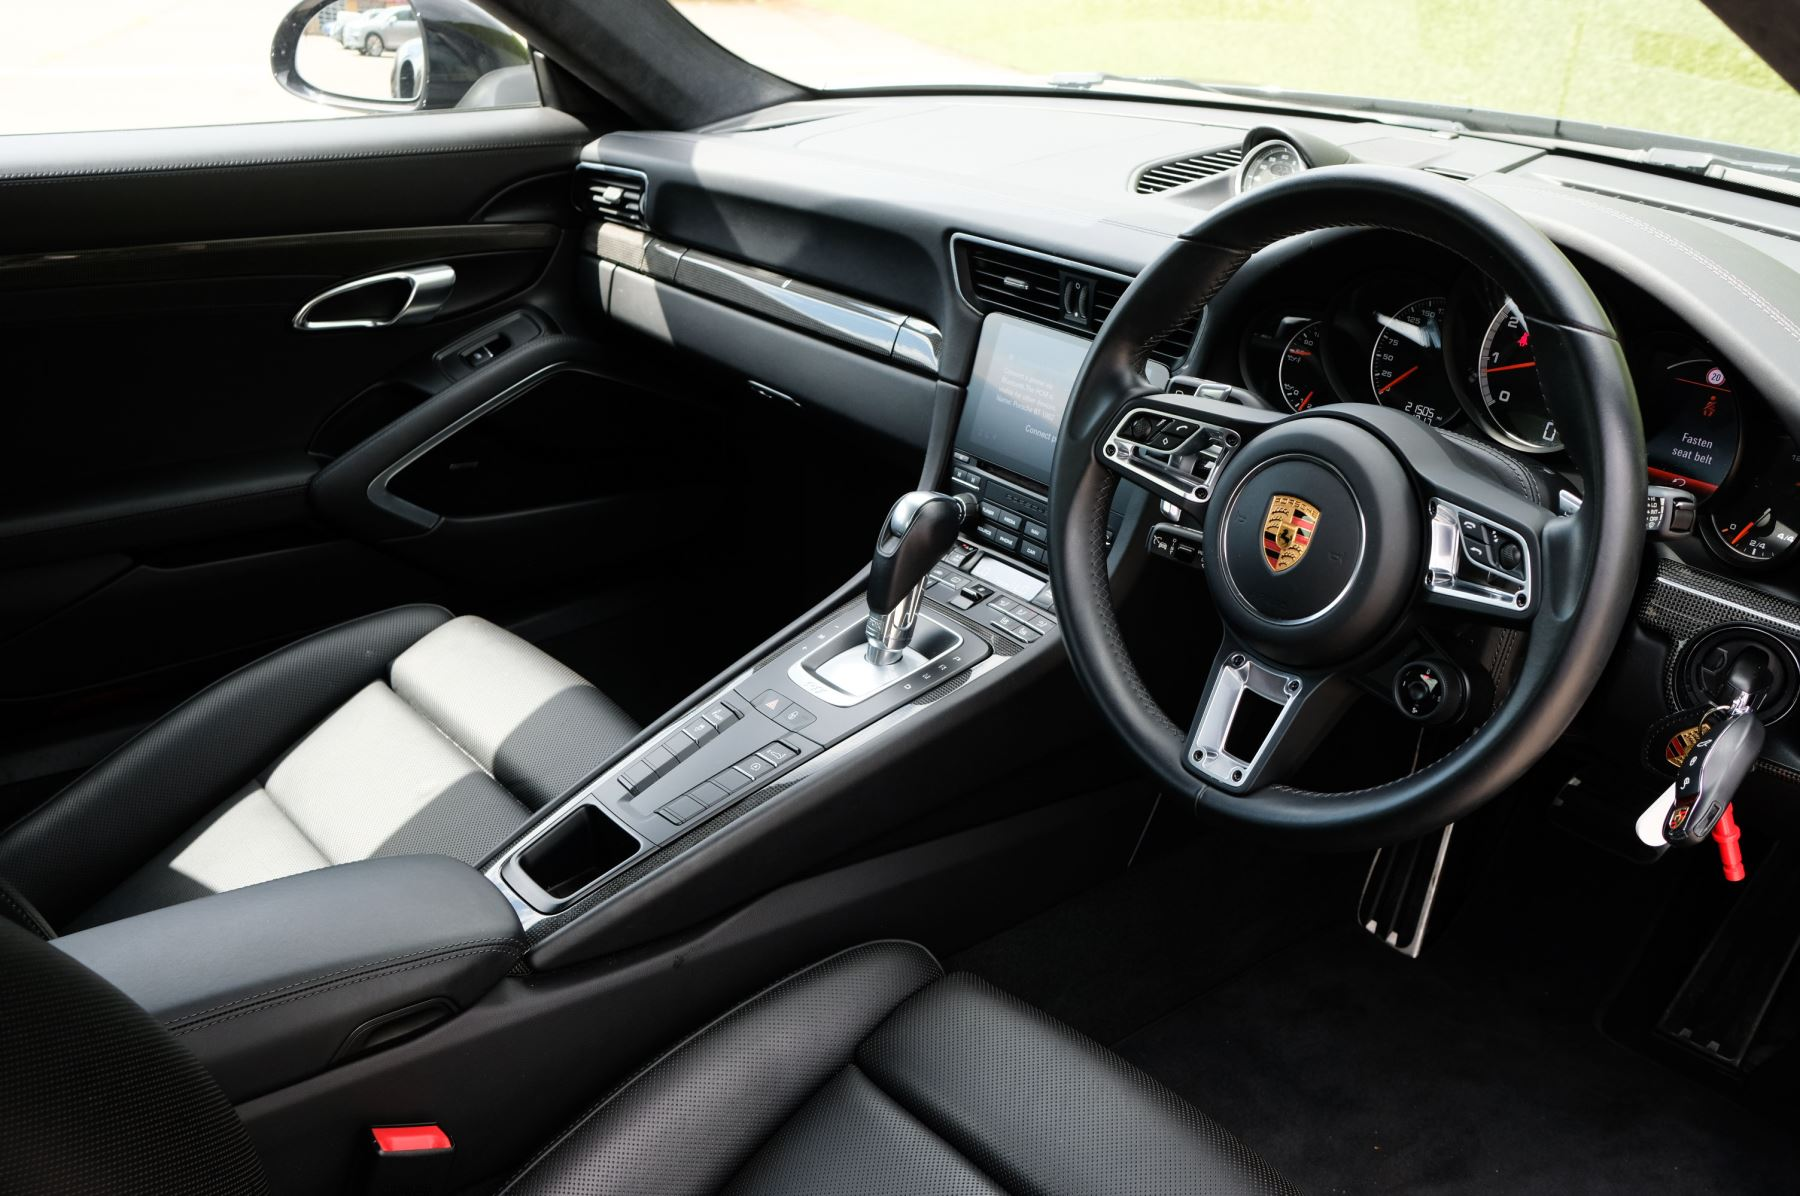 Porsche 911 PDK - Carbon interior package - Privacy Glass - 20 inch Sport Classic wheels image 9